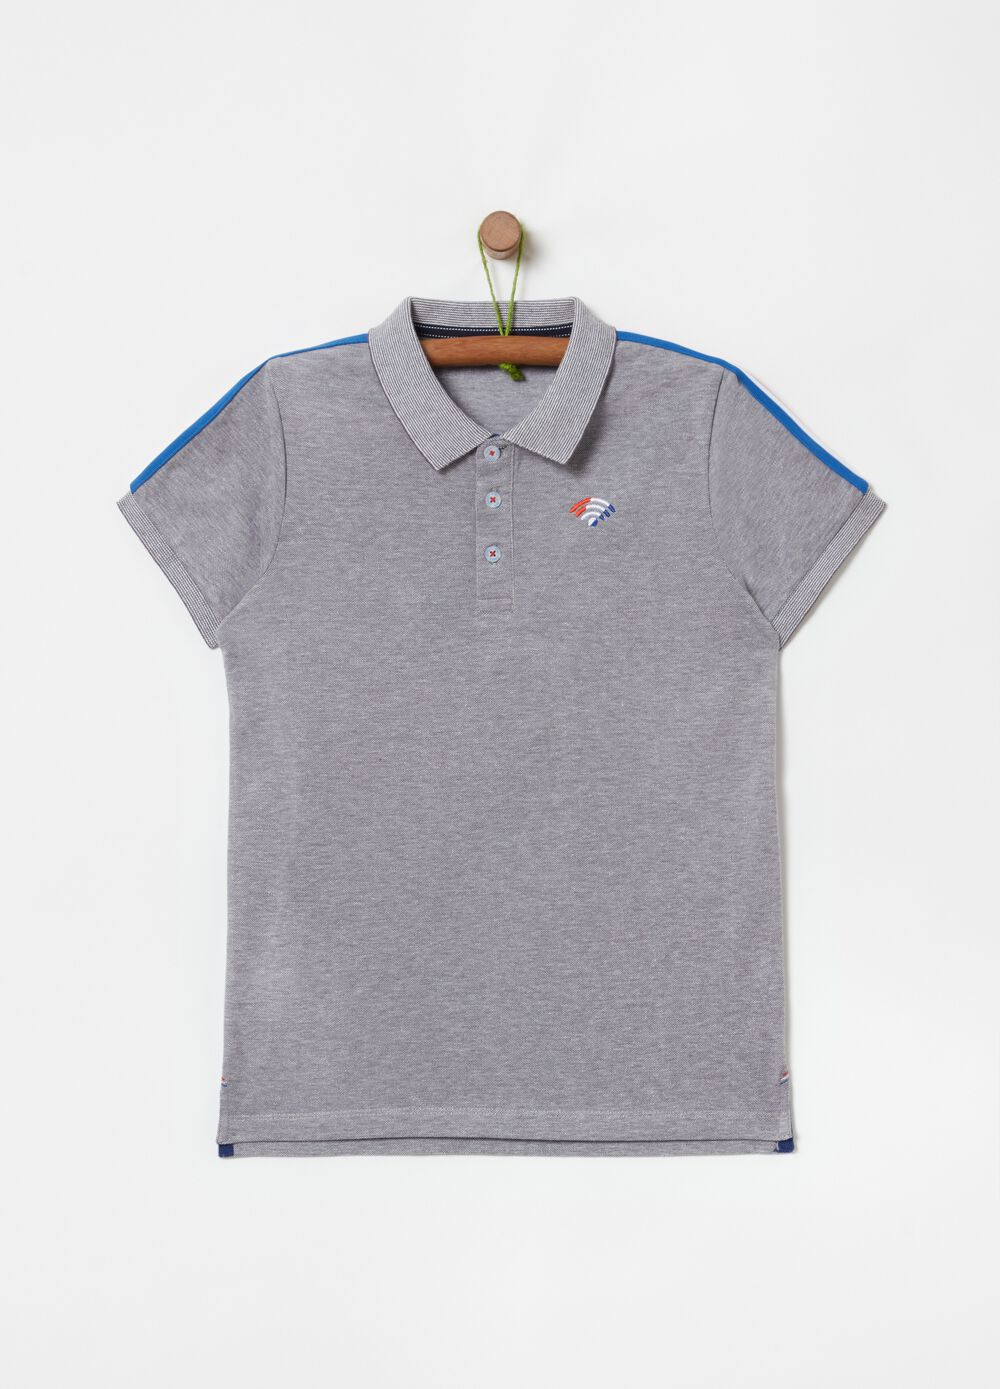 100% cotton polo shirt with lettering embroidery